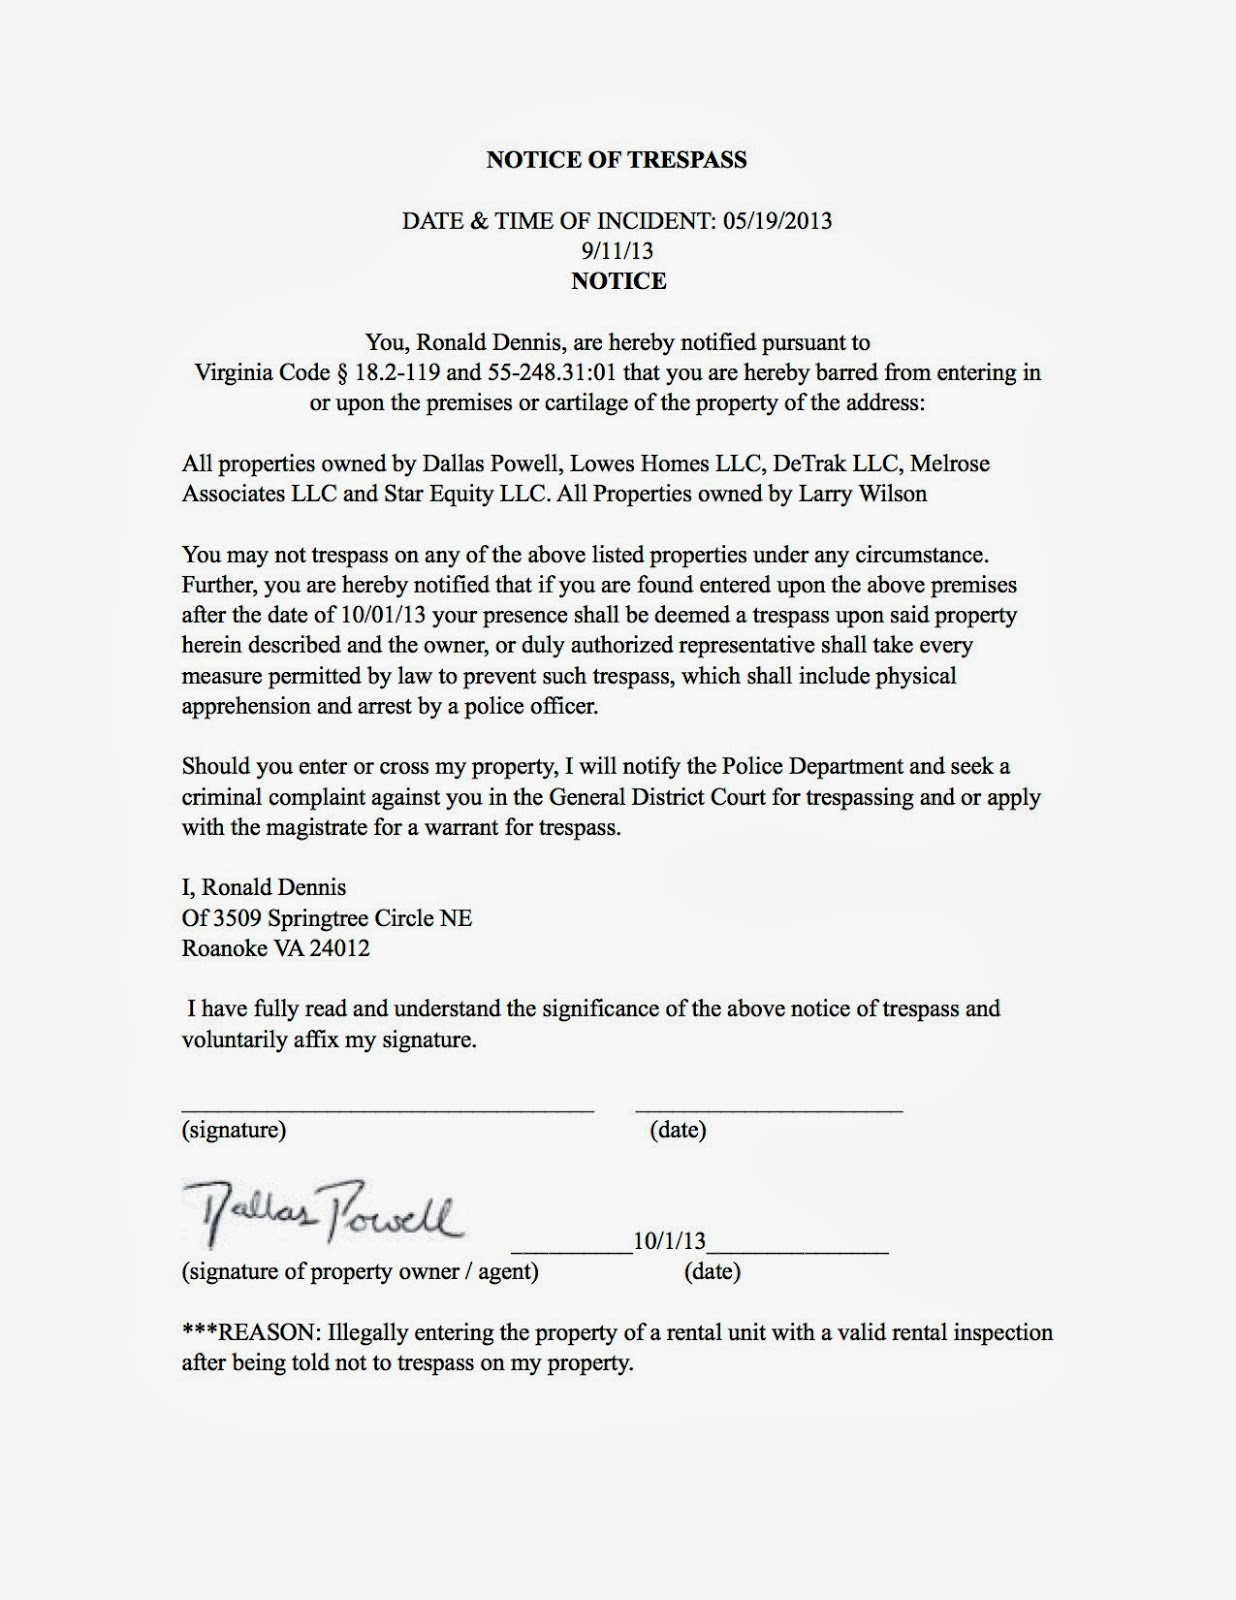 Cease and desist trespassing letter template examples for Trespass notice template